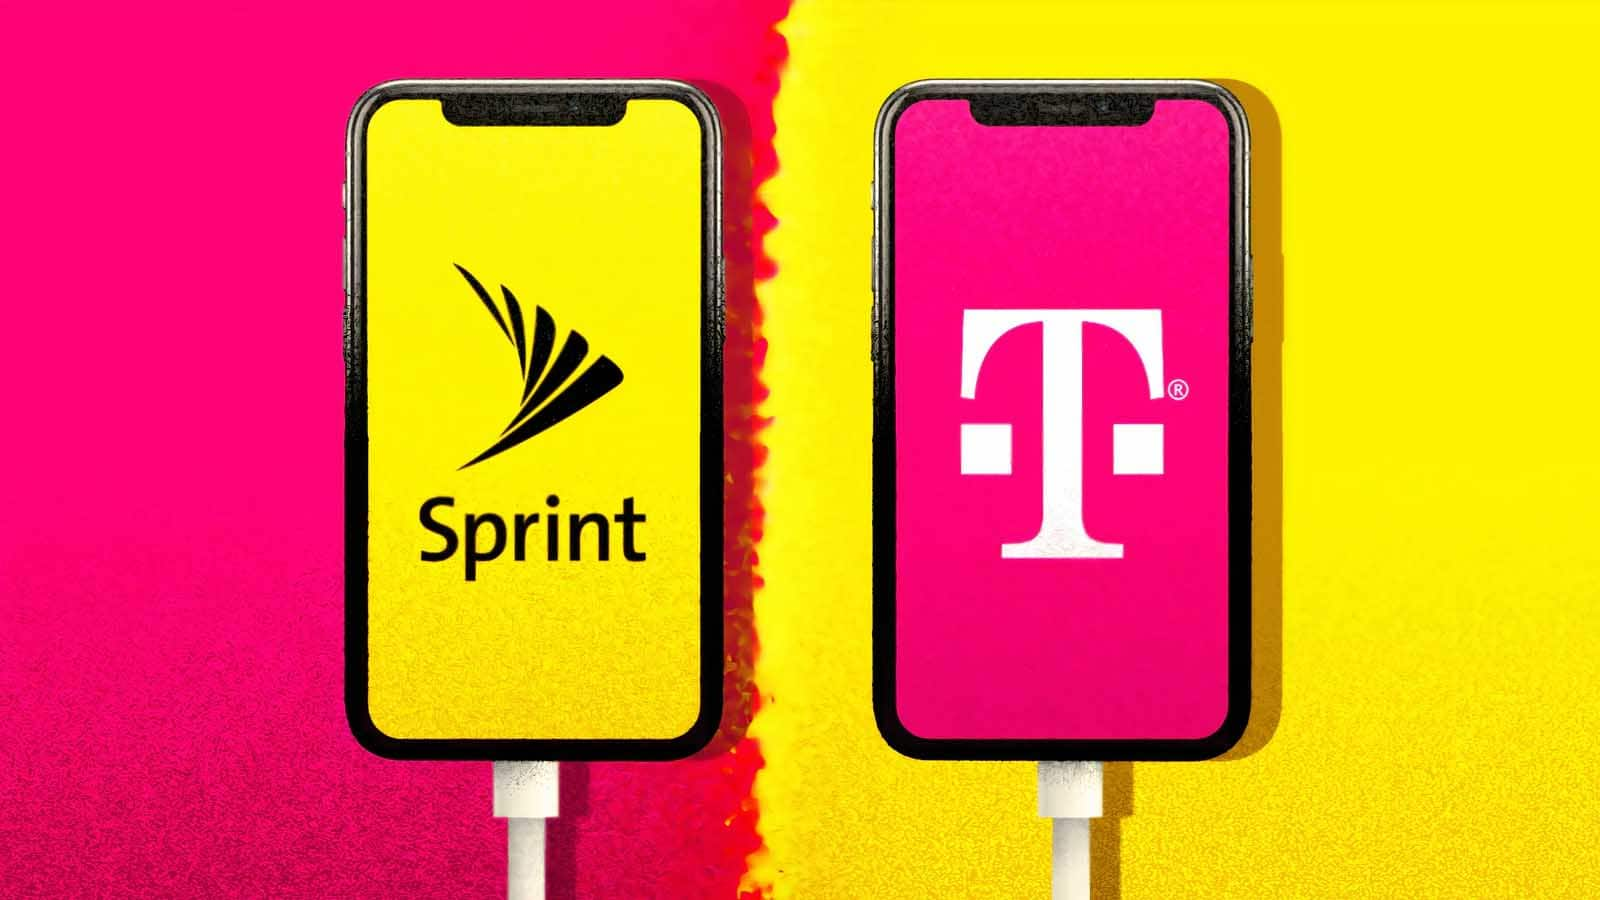 t-mobile and sprint logo on smartphones